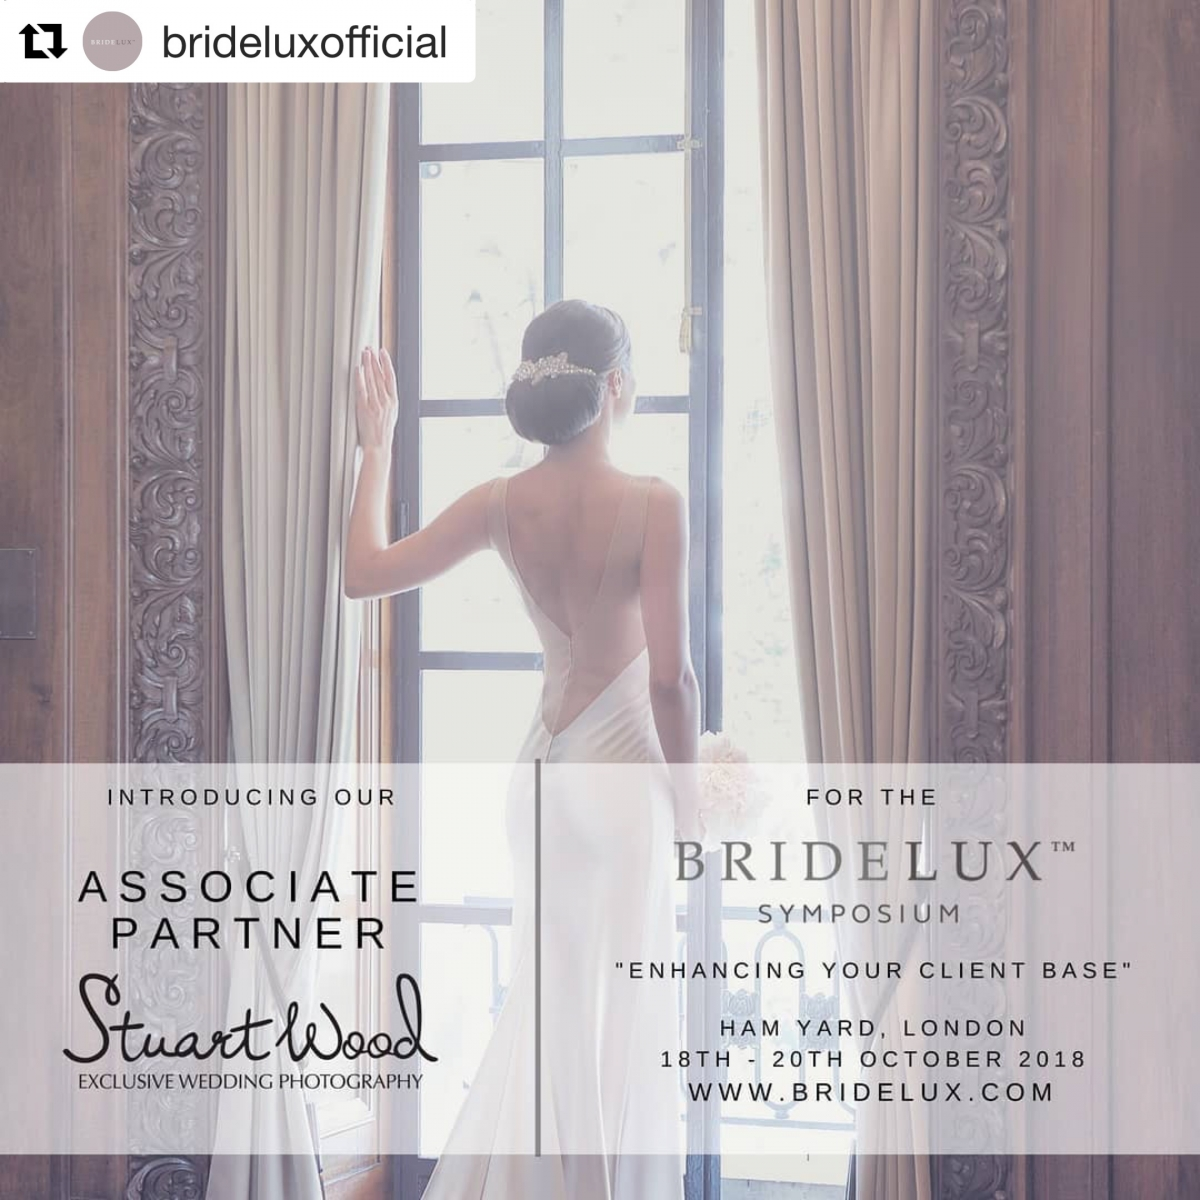 Stuart Wood Weddings / Bridelux Symposium/ Associate Partner